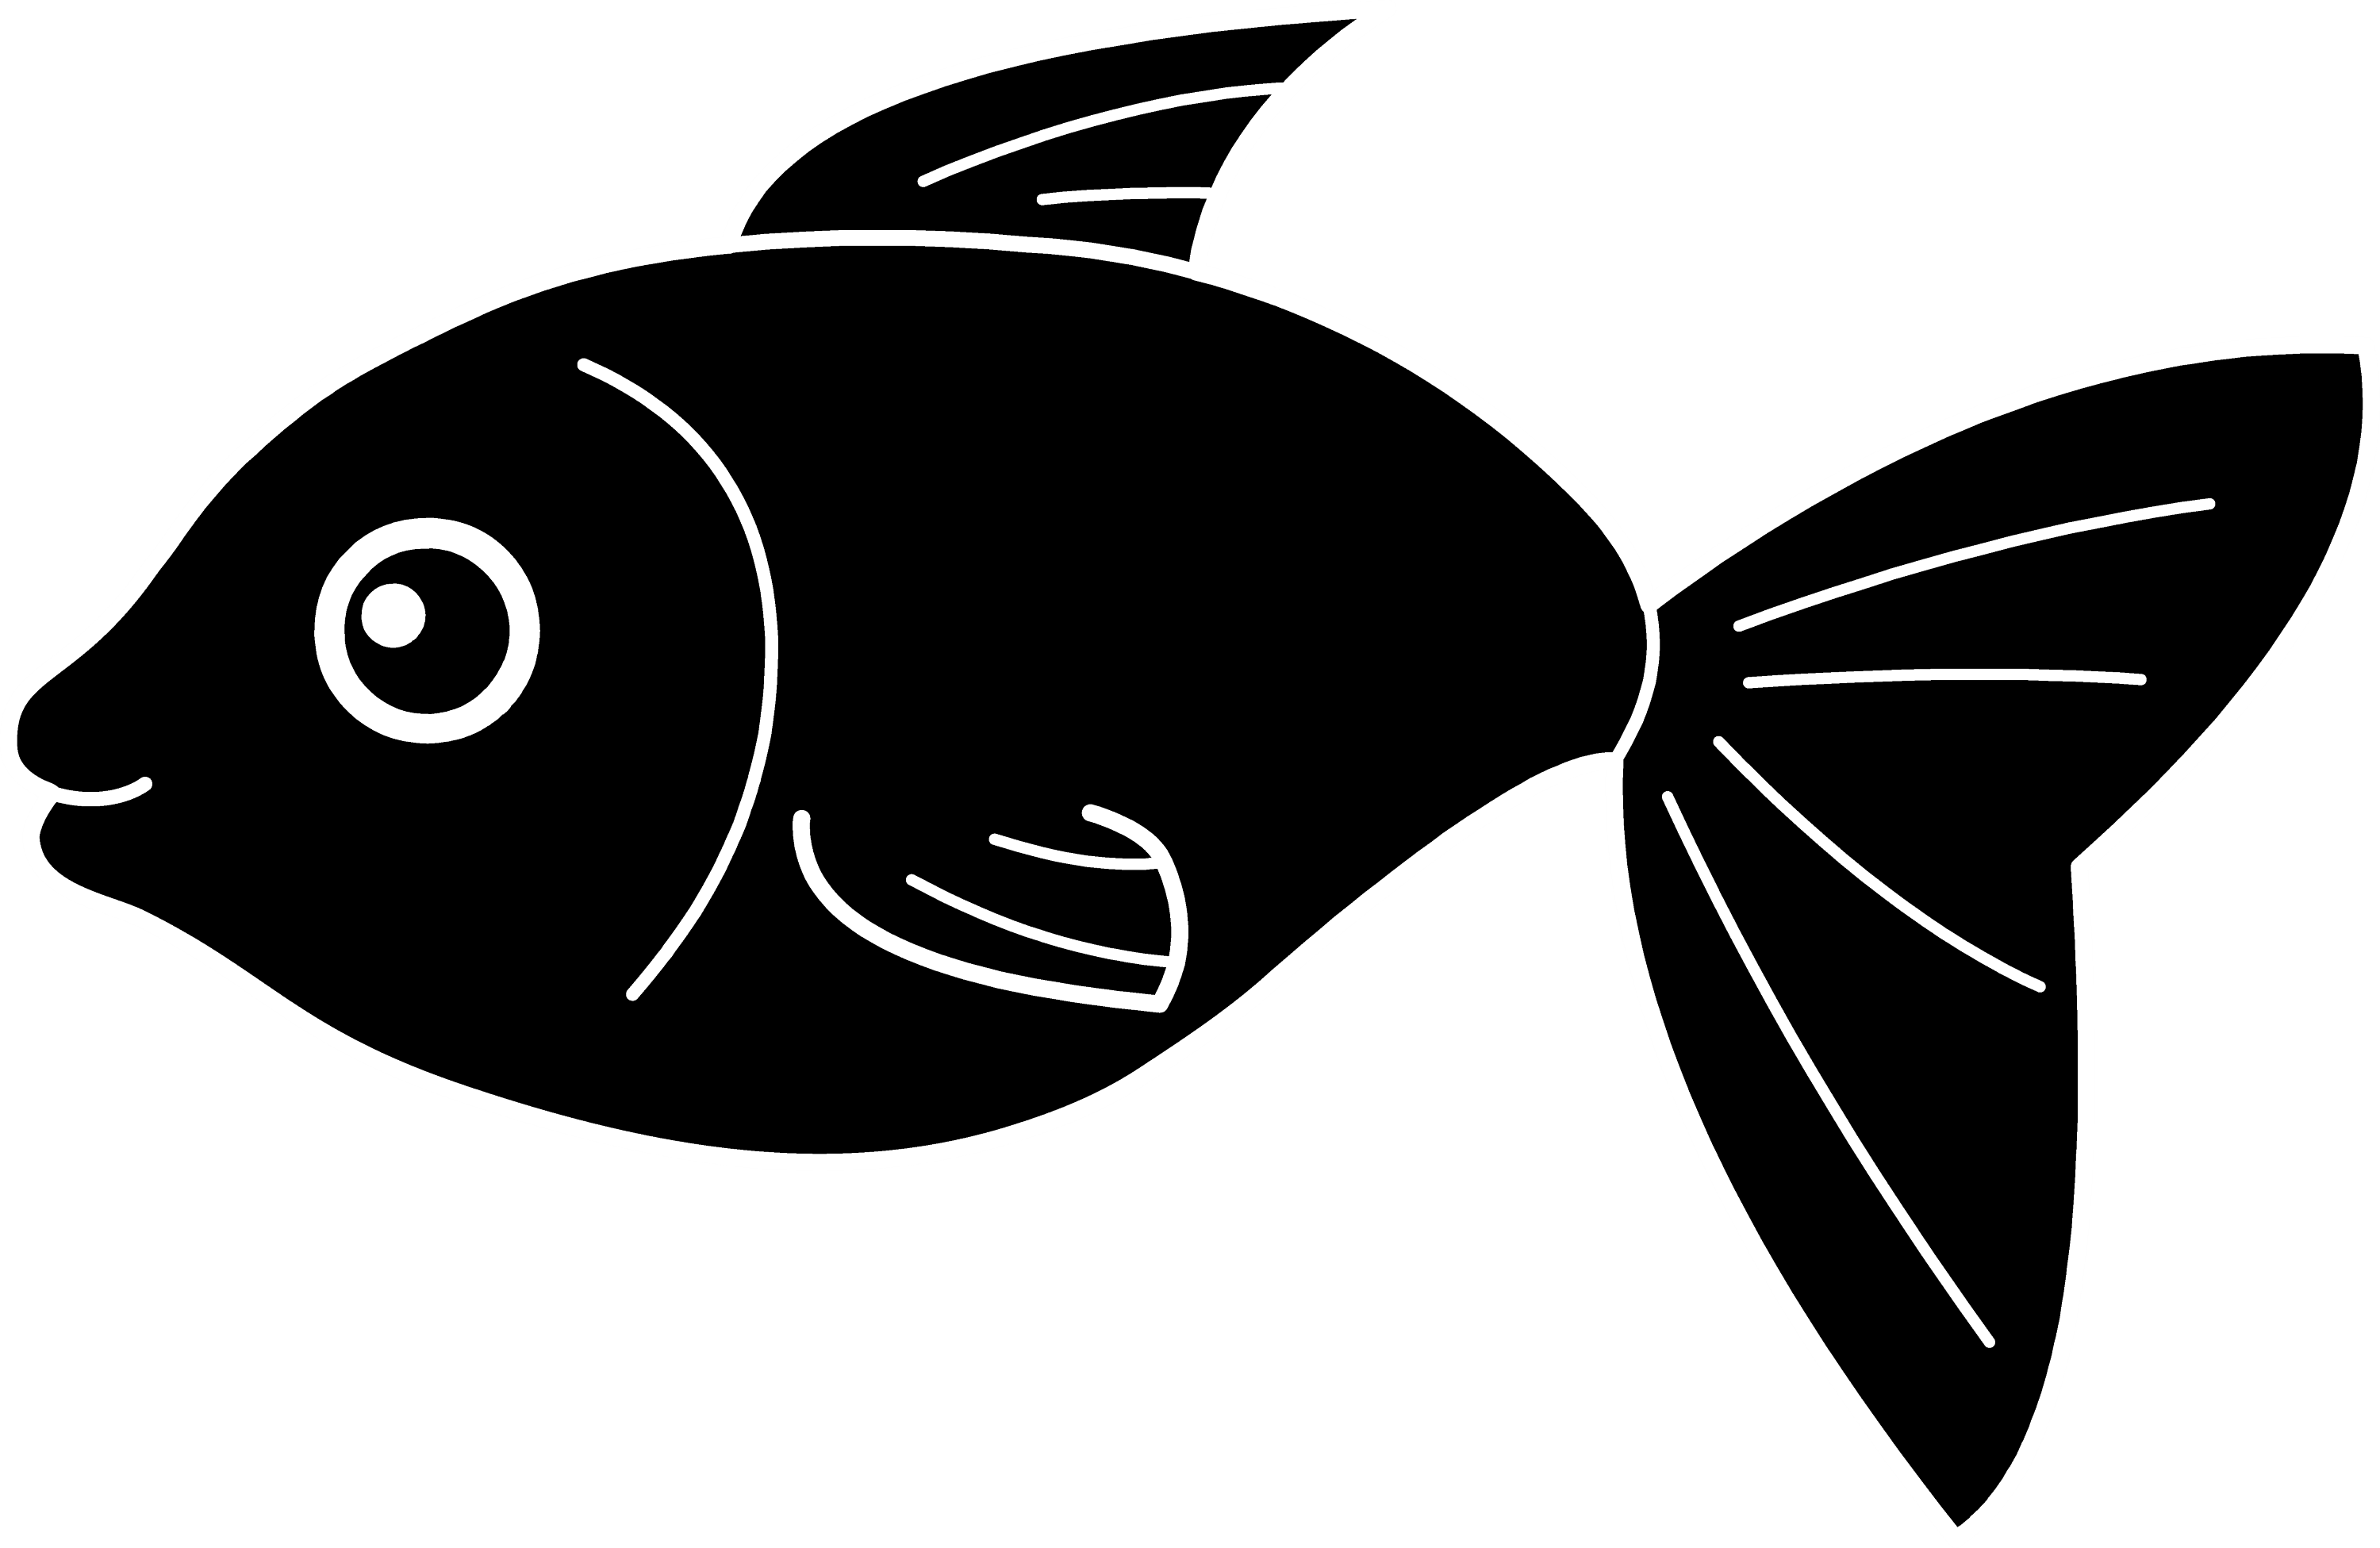 Clip Art Black Clipart black fish silhouette free clip art happy design